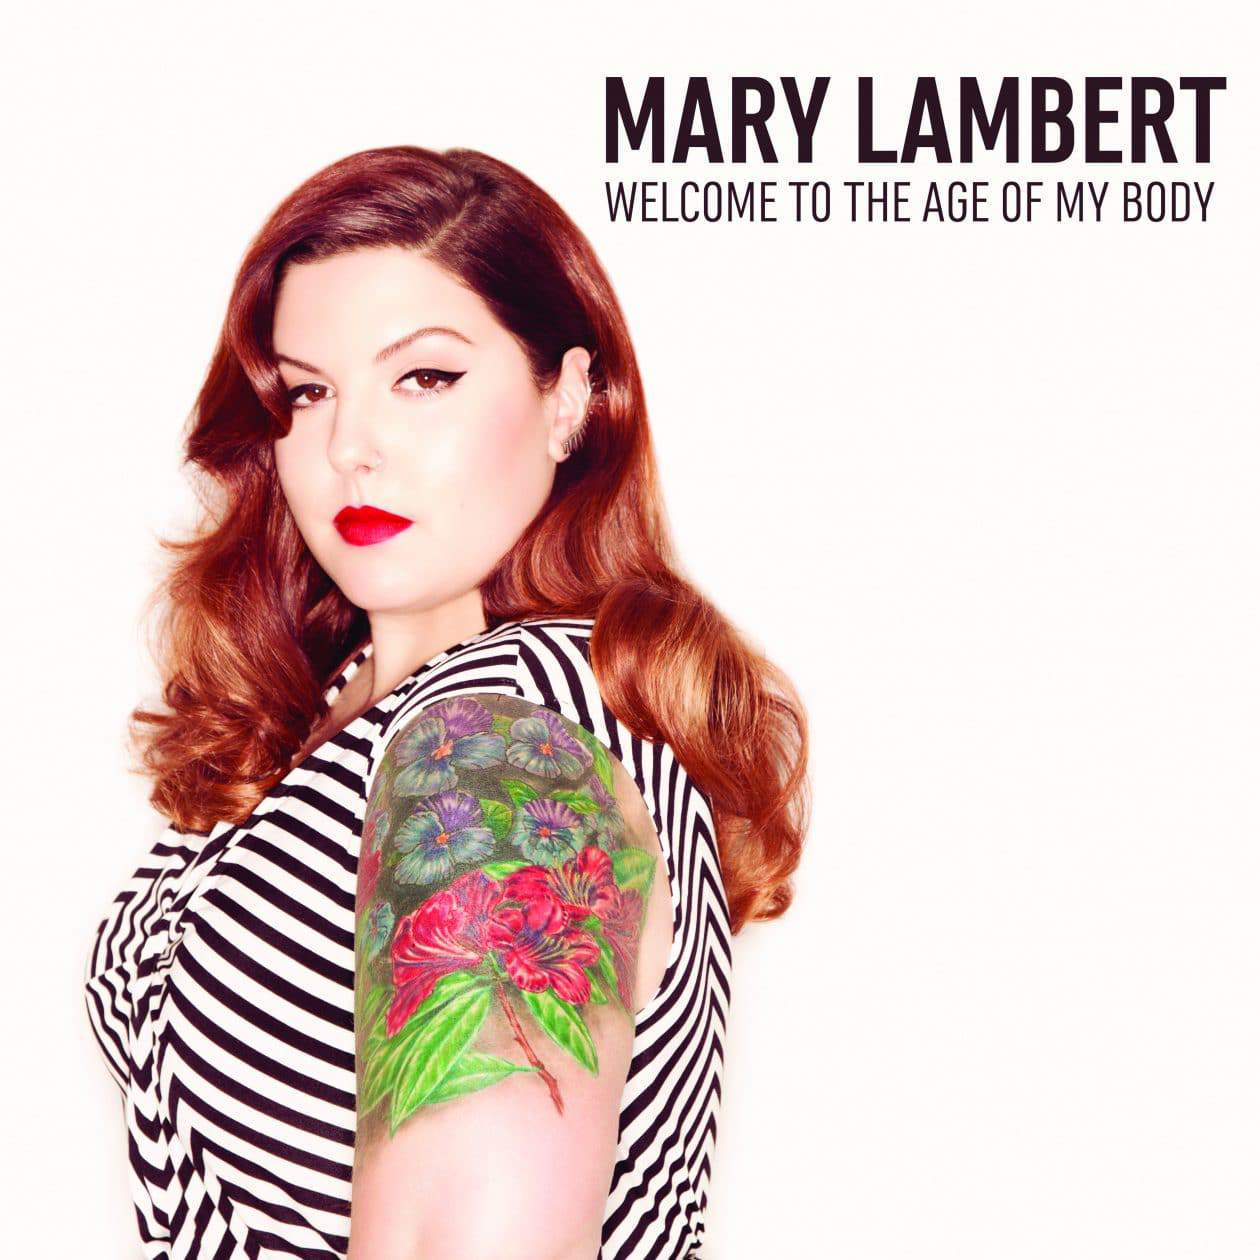 Interview with Mary Lambert on The Curvy Fashionista